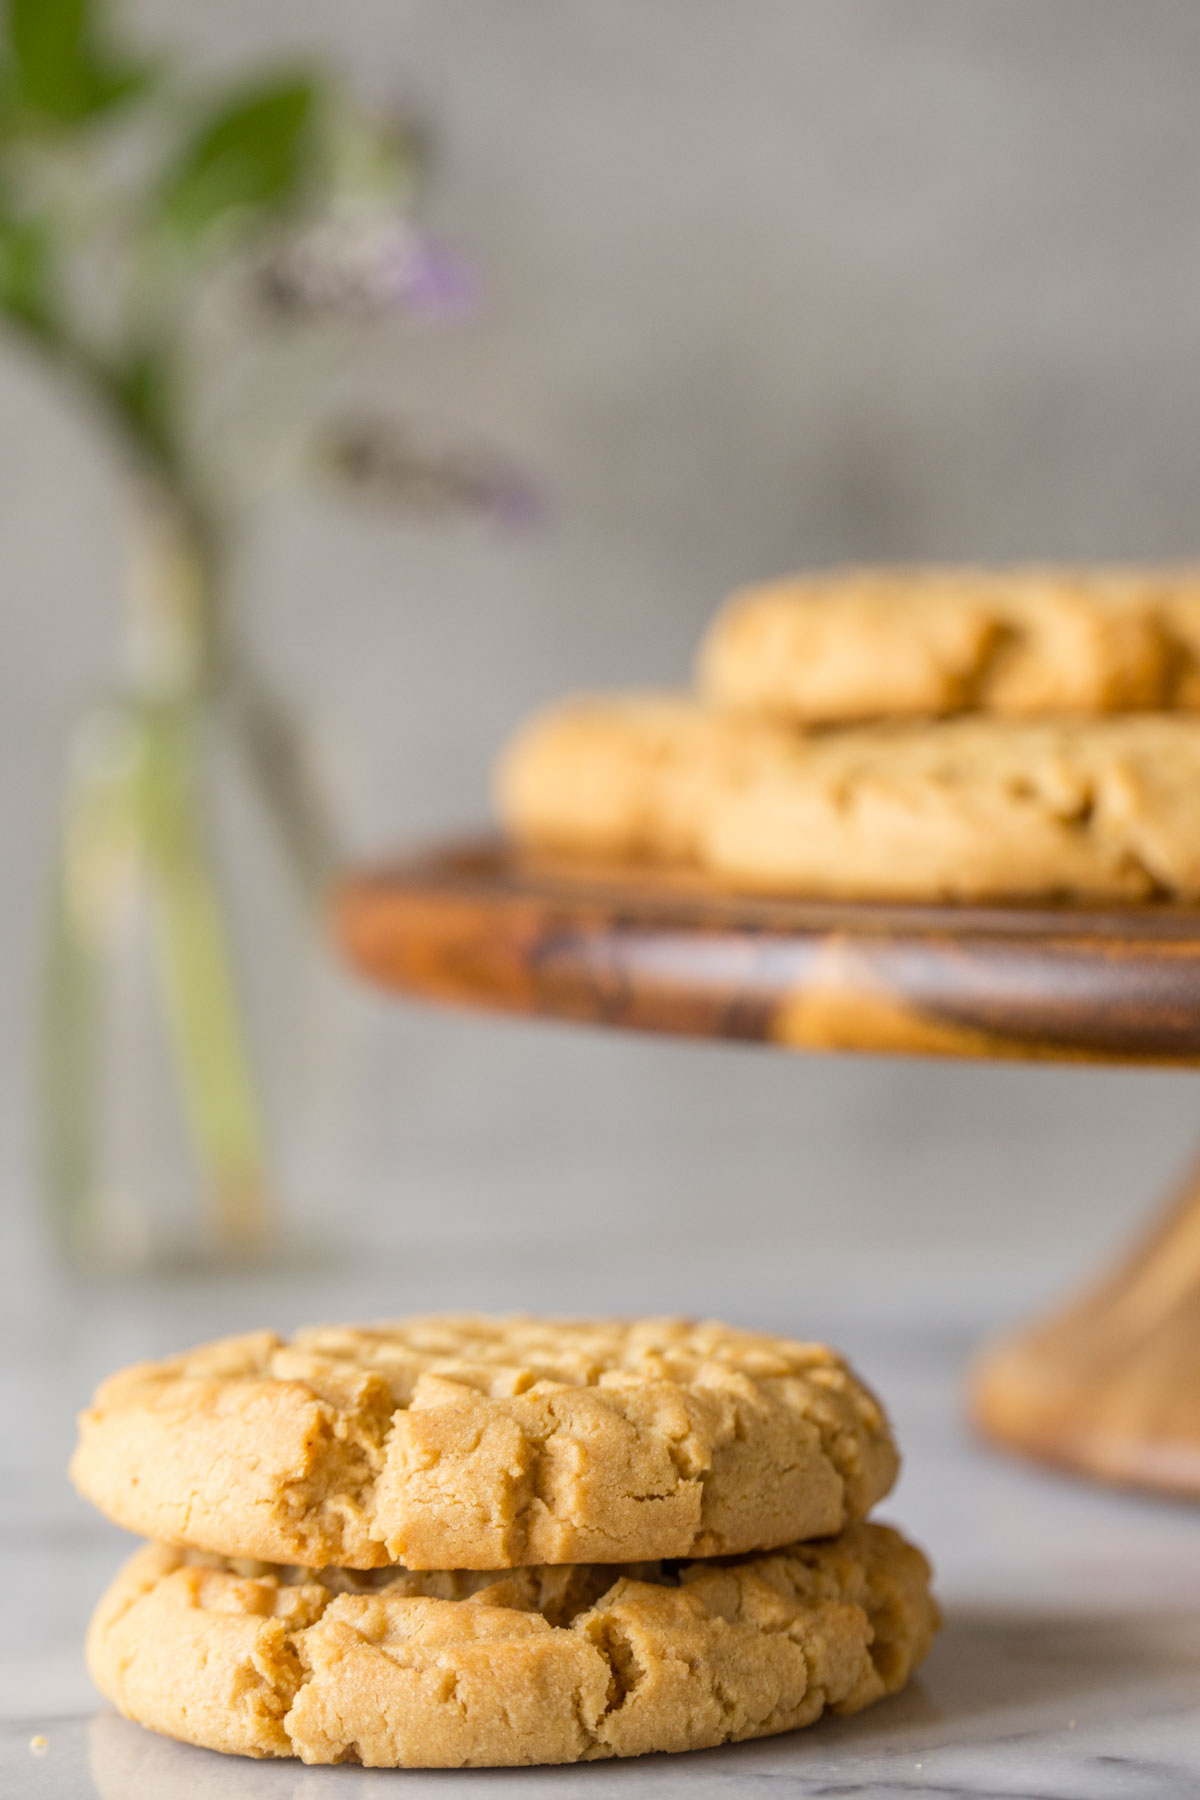 A small stack of Soft and Chewy Peanut Butter Cookies.